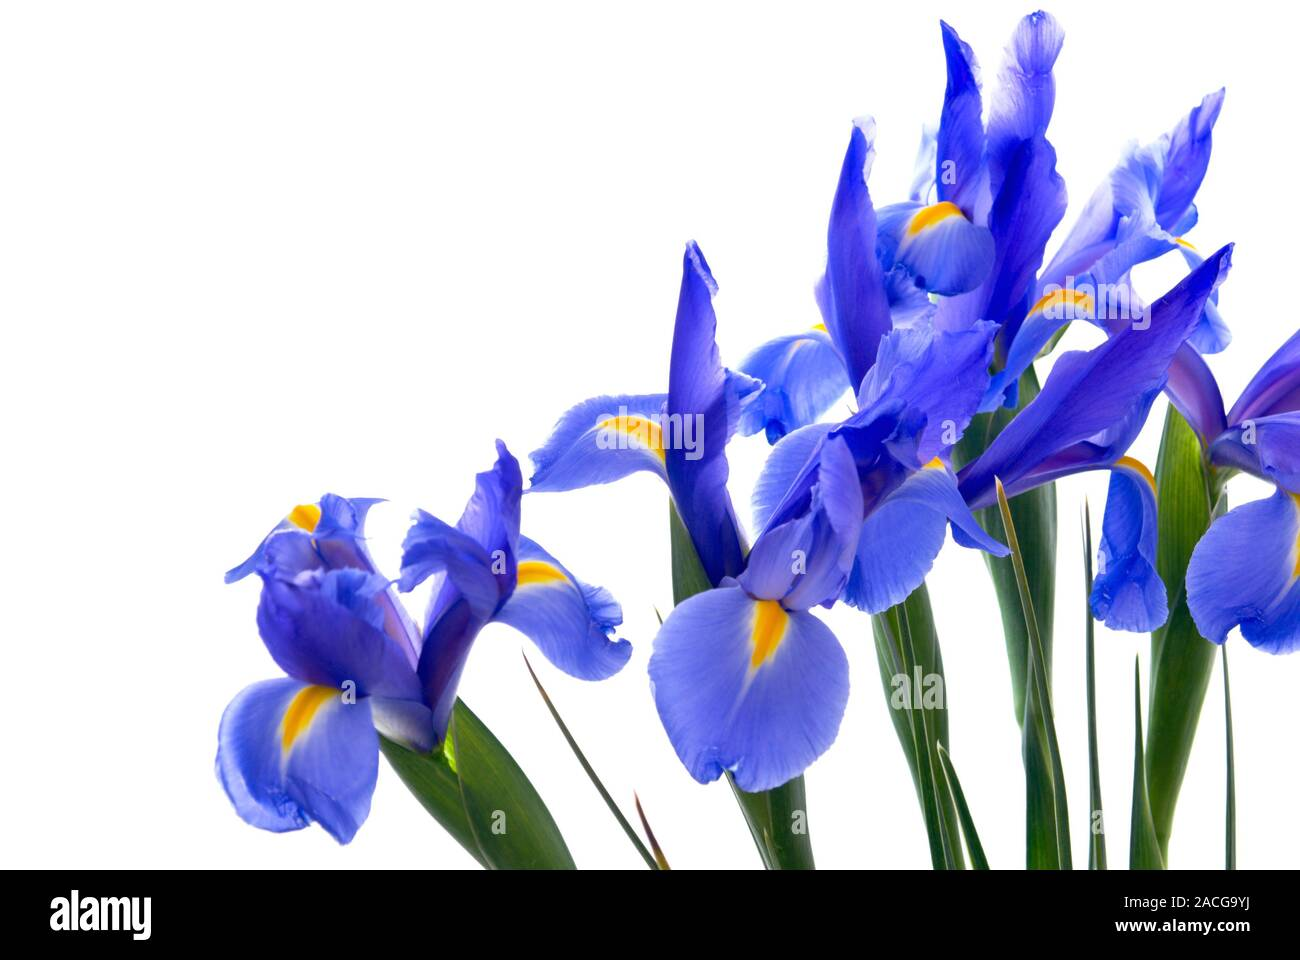 Fresh cut blue flag iris flowers form a border on an isolated white background. Stock Photo